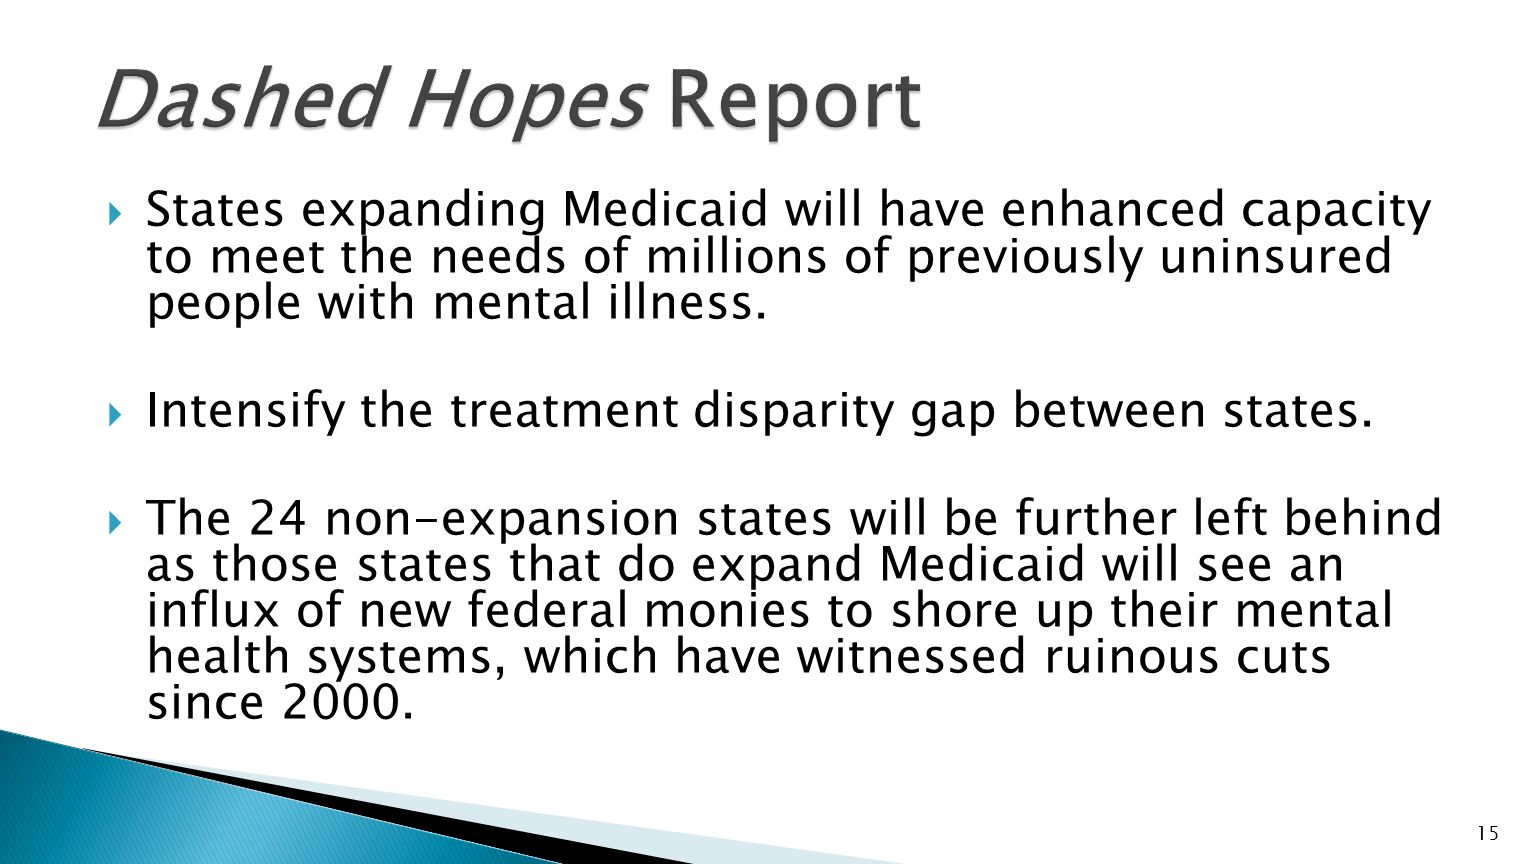  States expanding Medicaid will have enhanced capacity to meet the needs of millions of previously uninsured people with mental illness.